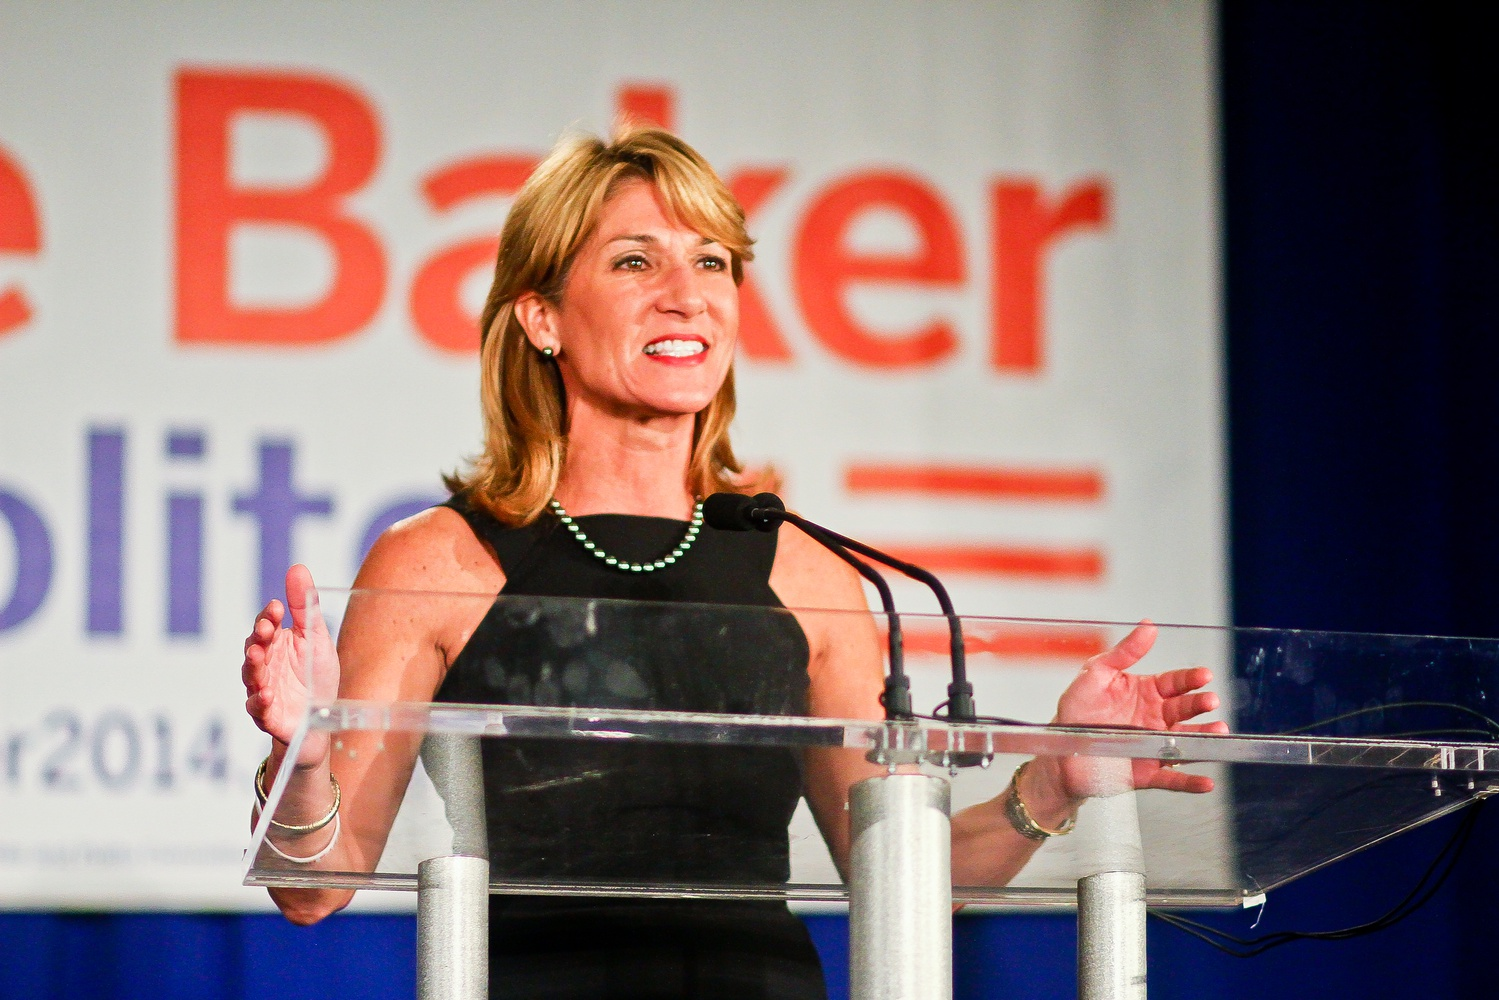 Karyn Polito, winner of the Lieutenant Governor Massachusetts position, greets the crowd shortly after Charlie D. Baker '79 was announced as the gubernatorial winner.